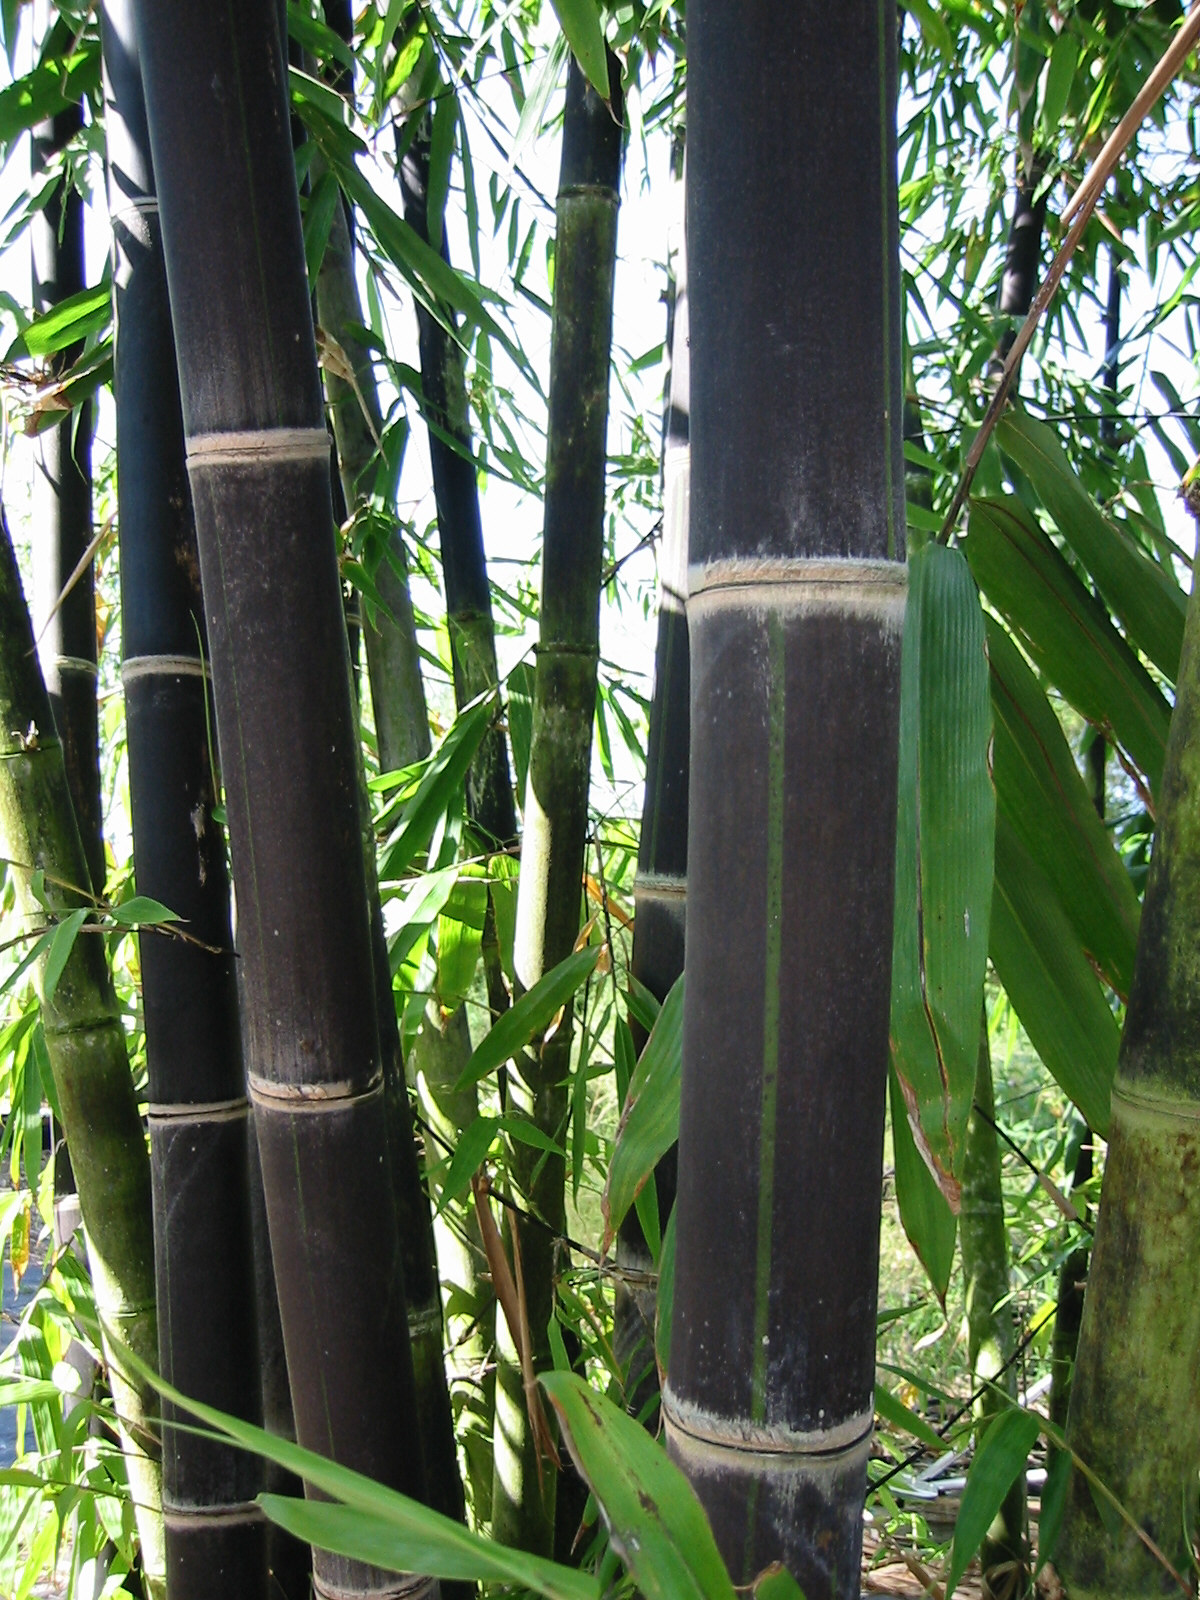 in botany a tree is a plant with an elongated stem essay Botany lab ii stems herbaceous plant stems the stem of a plant is that xylem and phloem found in the trunk of a tree.